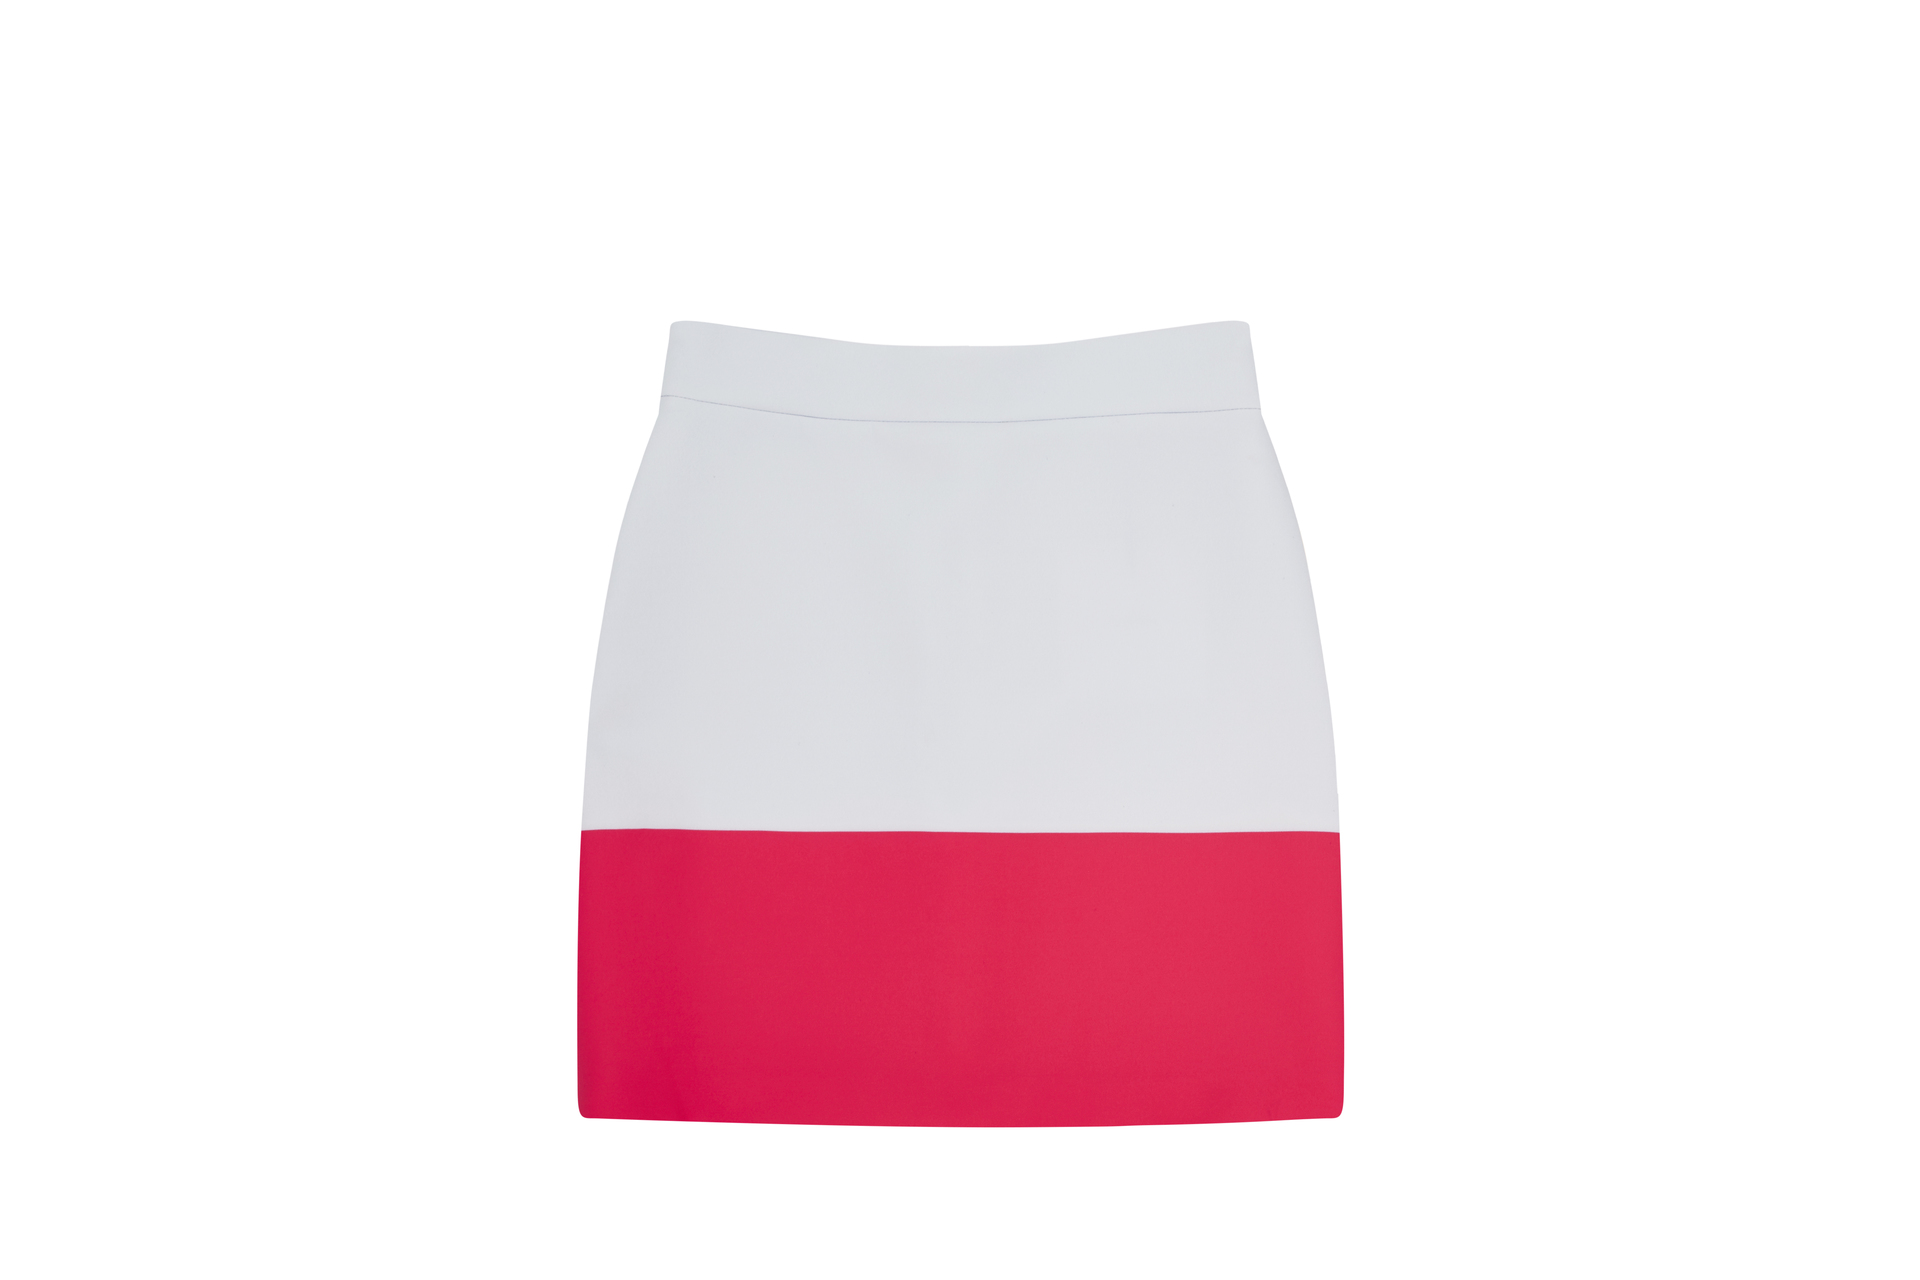 72dpi-239139cb57-64.-BY-JOHNNY,-Bold-Colour-Mini-Skirt-Sky-Blue-Pink,-250,-www.byjohnny.com.au